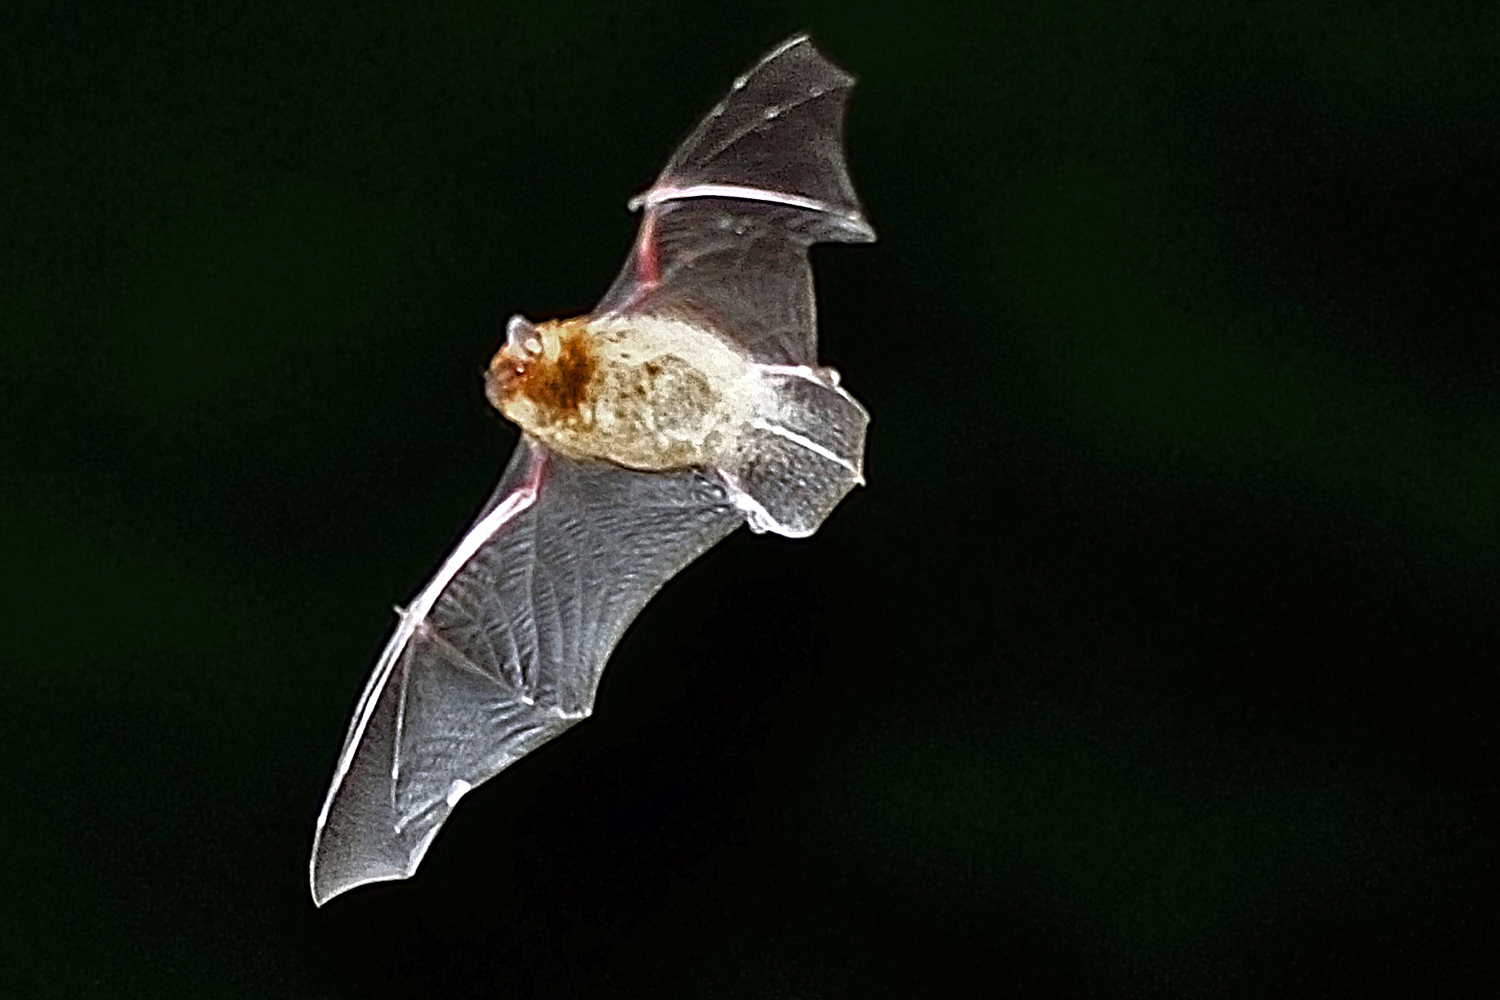 Bats can consume a large number of insects in areas where they are established.